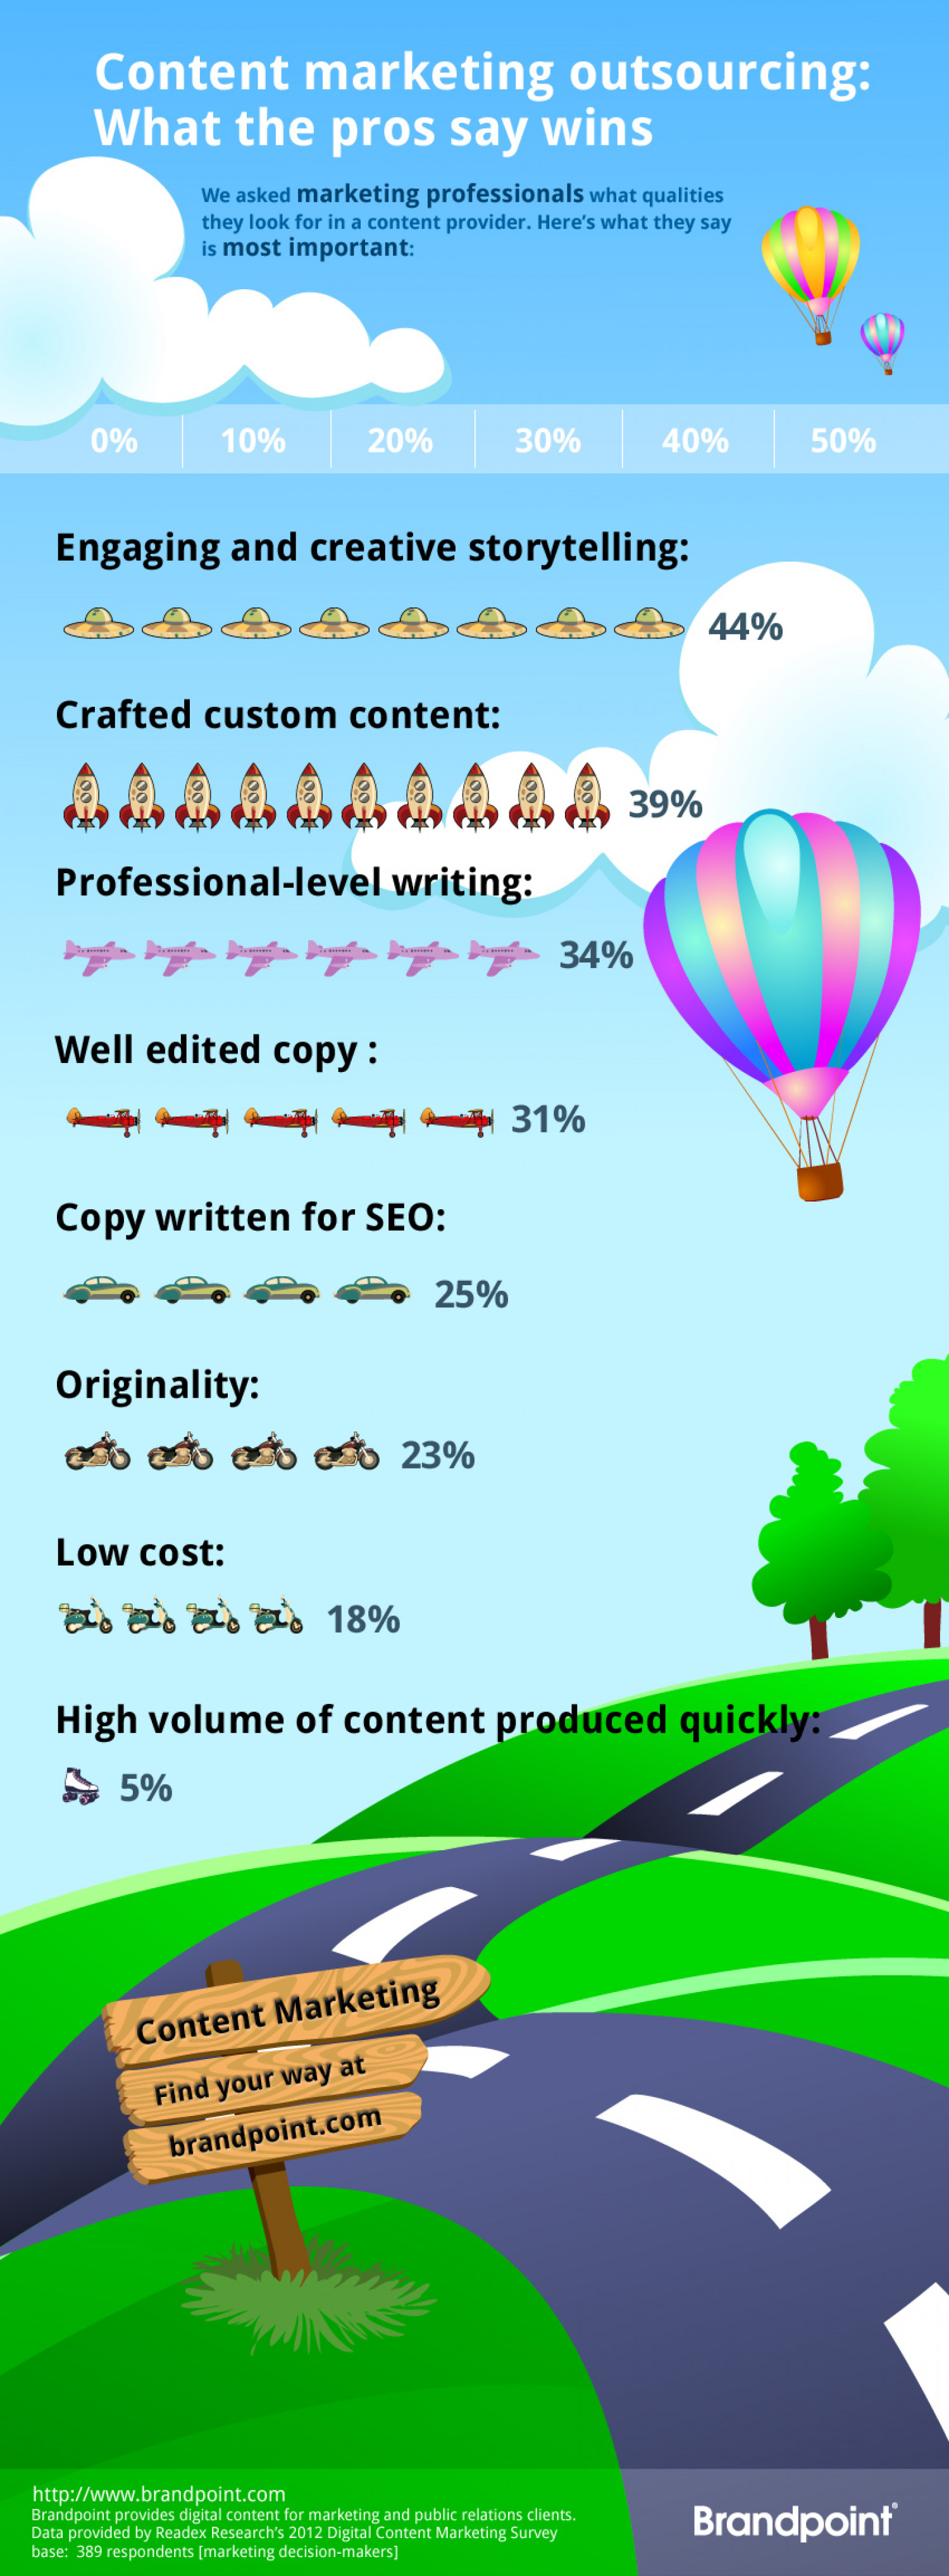 Content Marketing Outsourcing: What the Pros Say Wins – [Infographic] Infographic